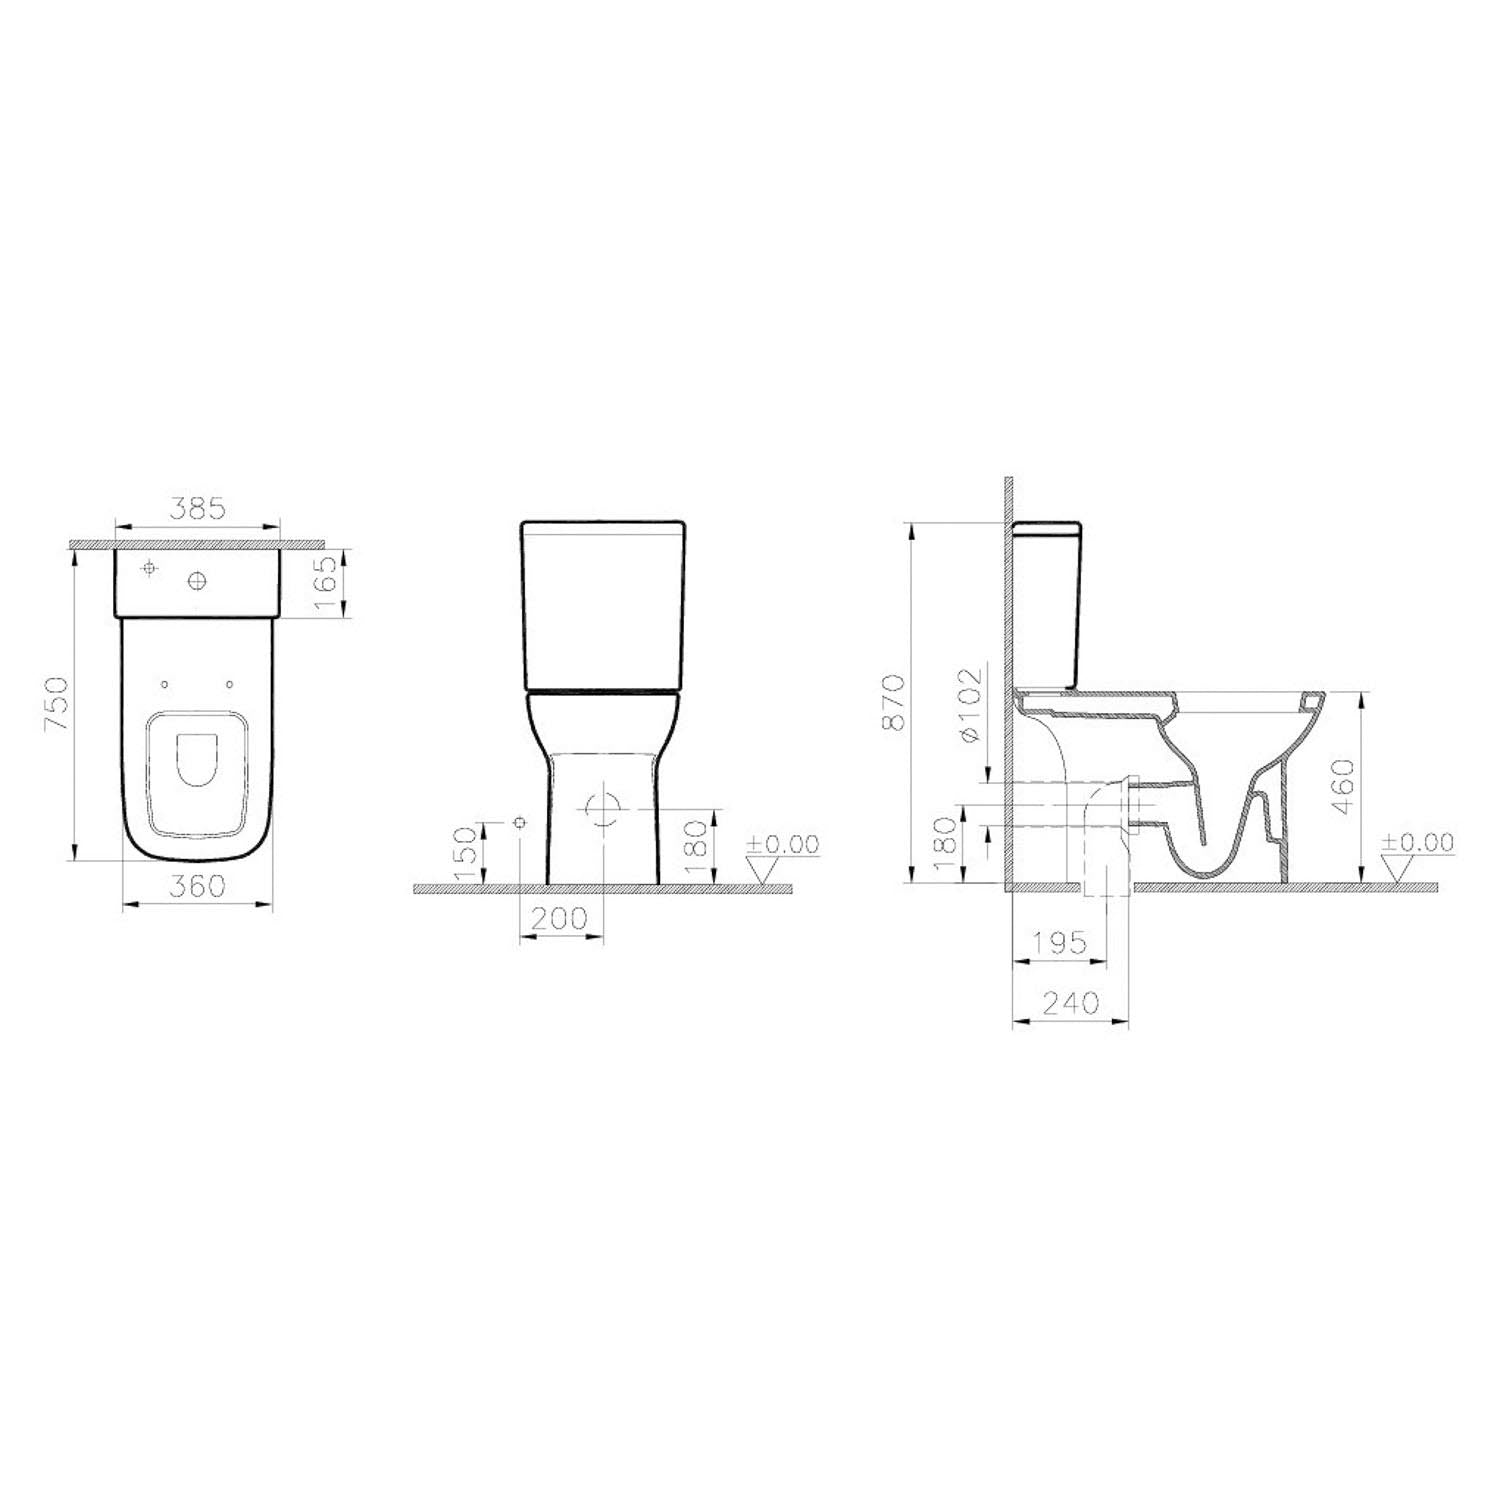 Consilio Comfort Height Close Coupled Toilet with the cistern dimensional drawing